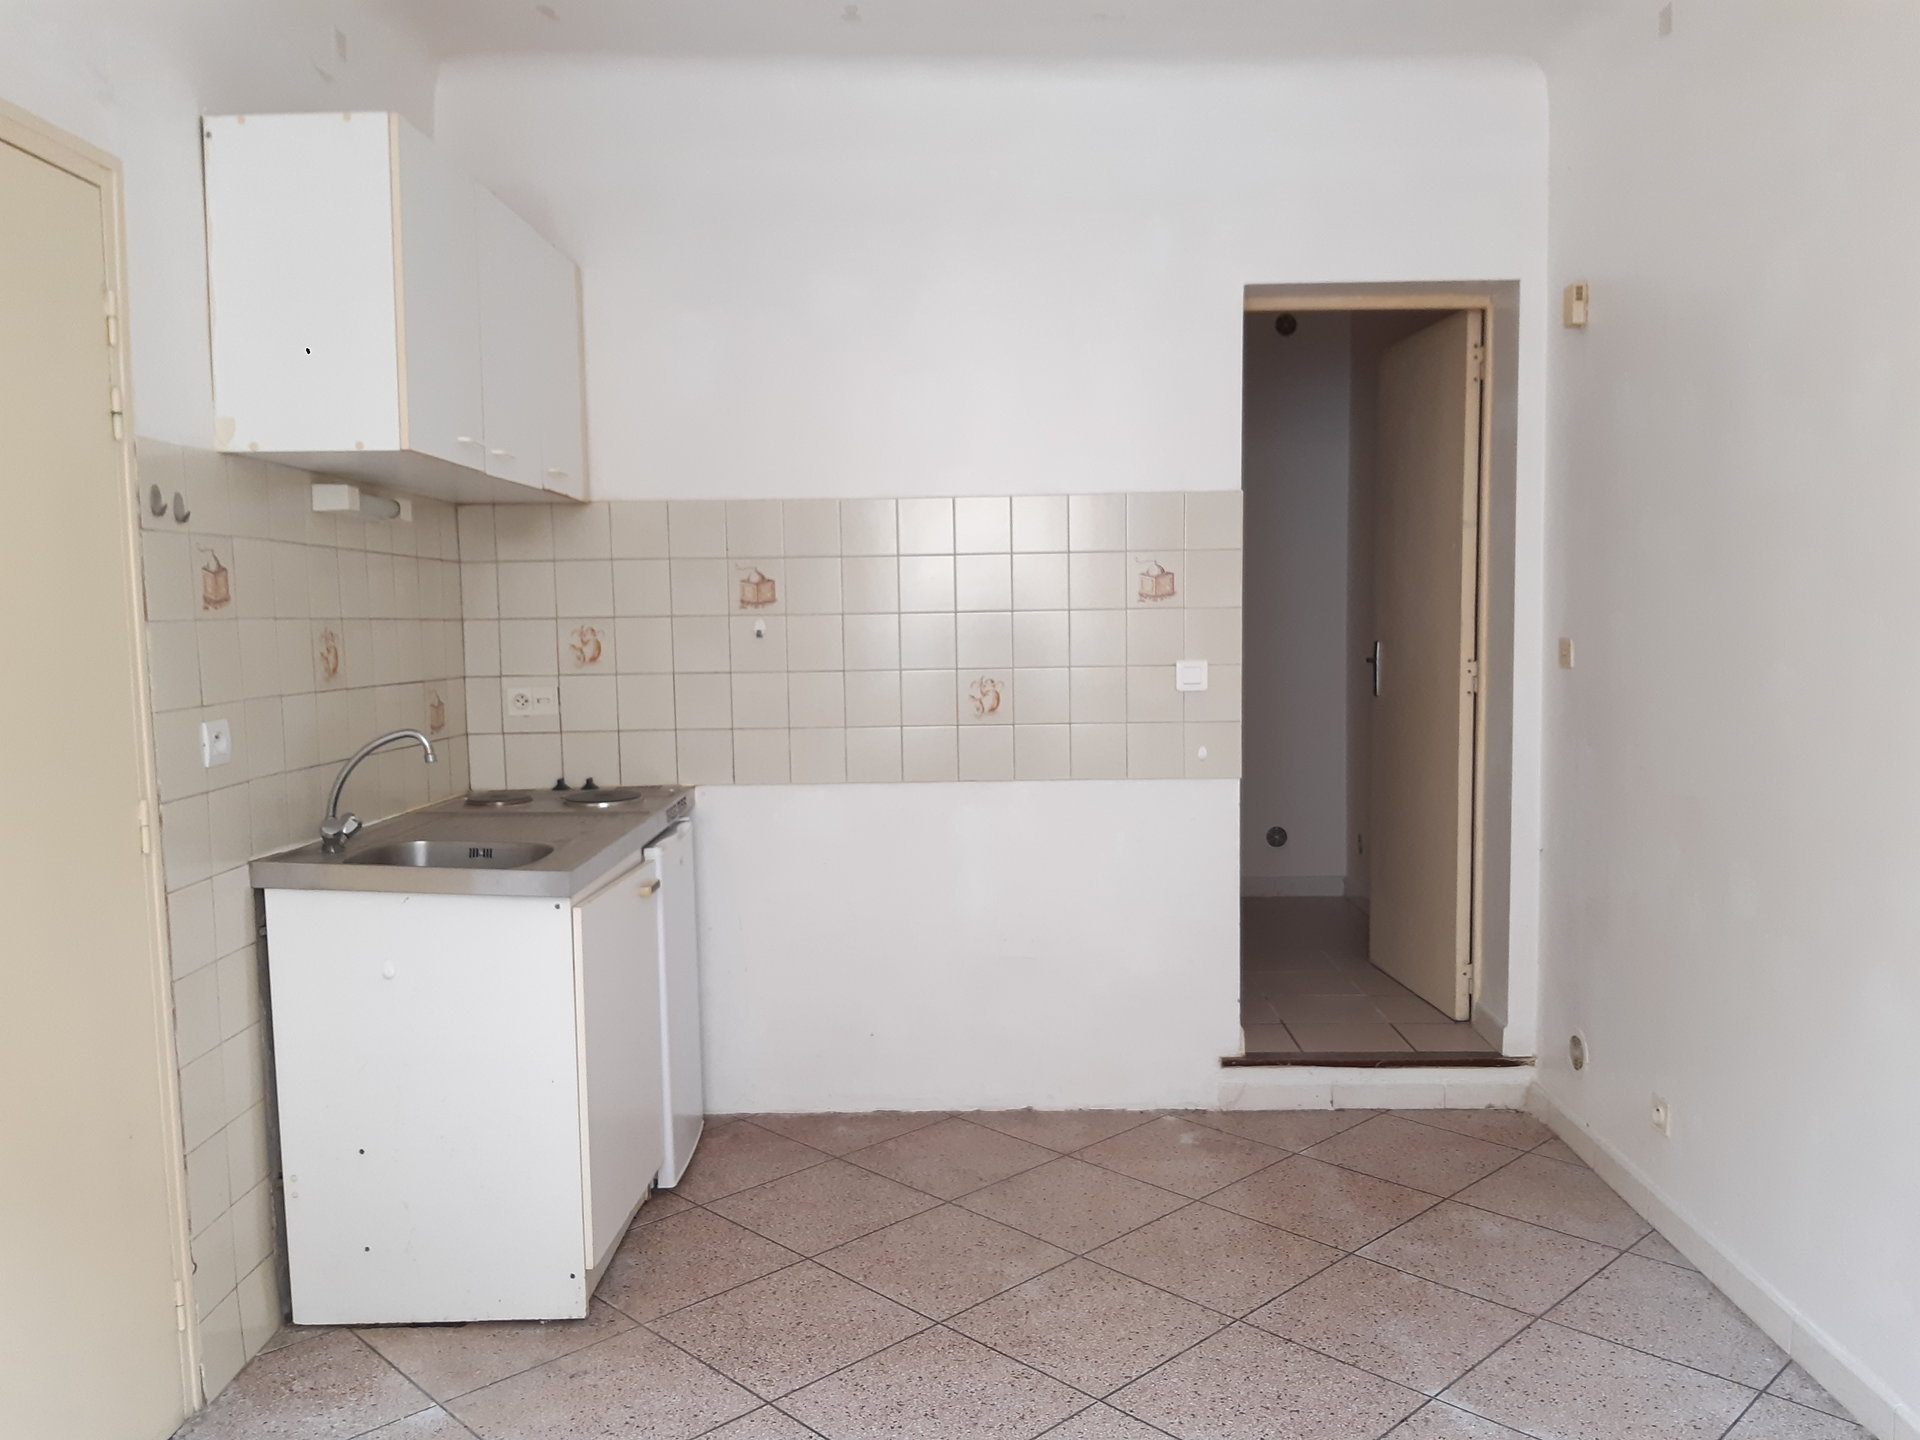 Location Appartement TARASCON Mandat : 3435